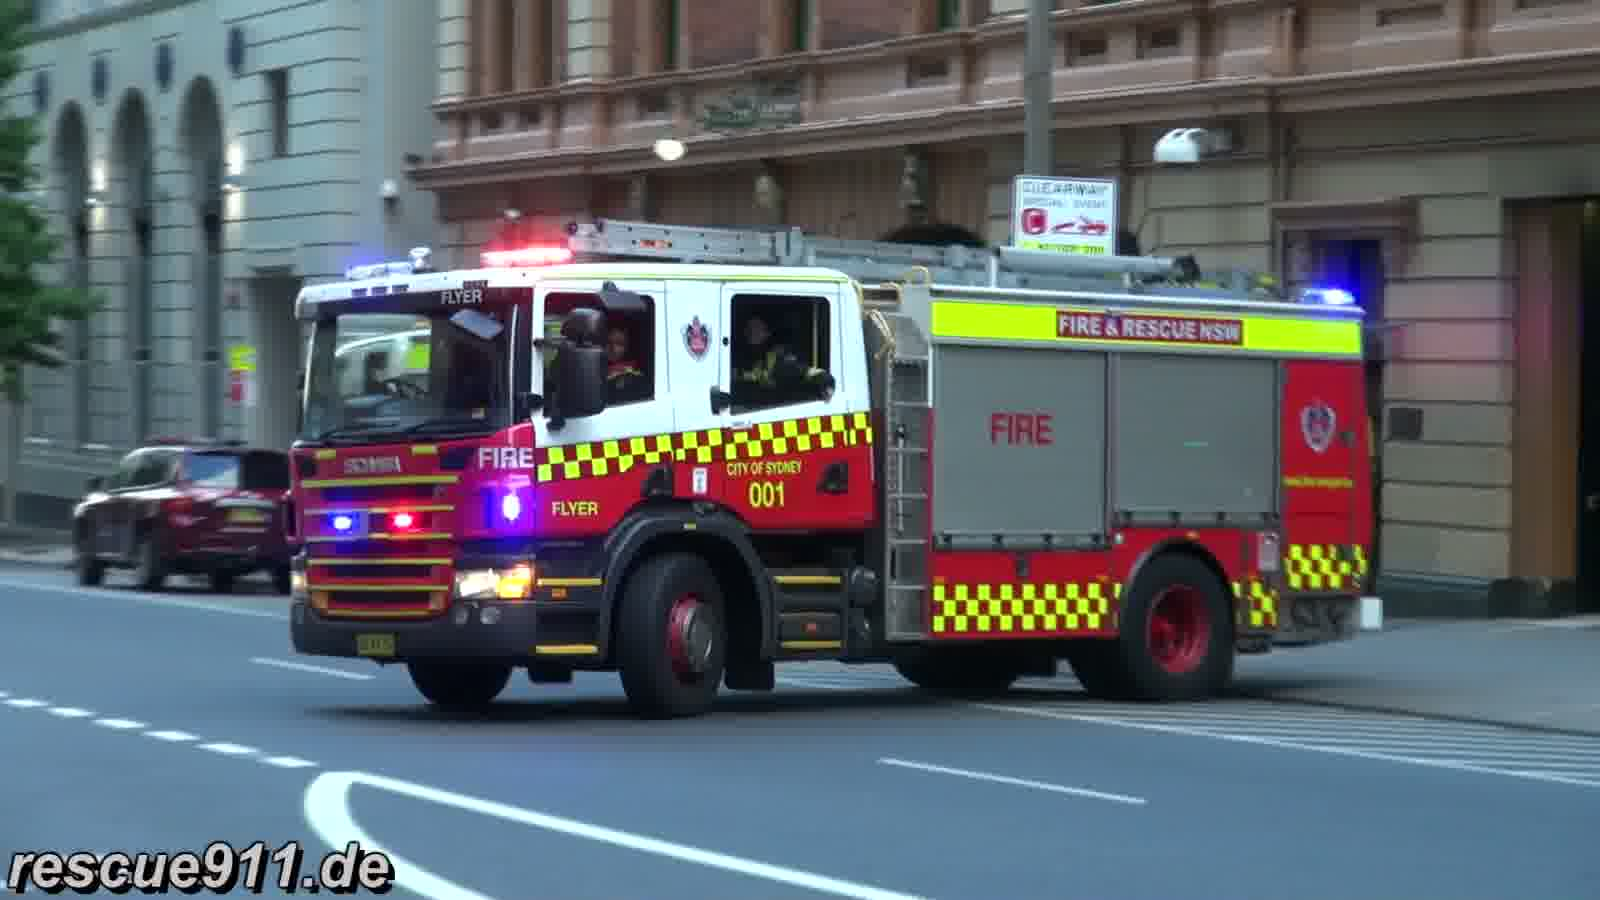 Pump Flyer 001 City of Sydney Fire & Rescue NSW (collection) (stream)